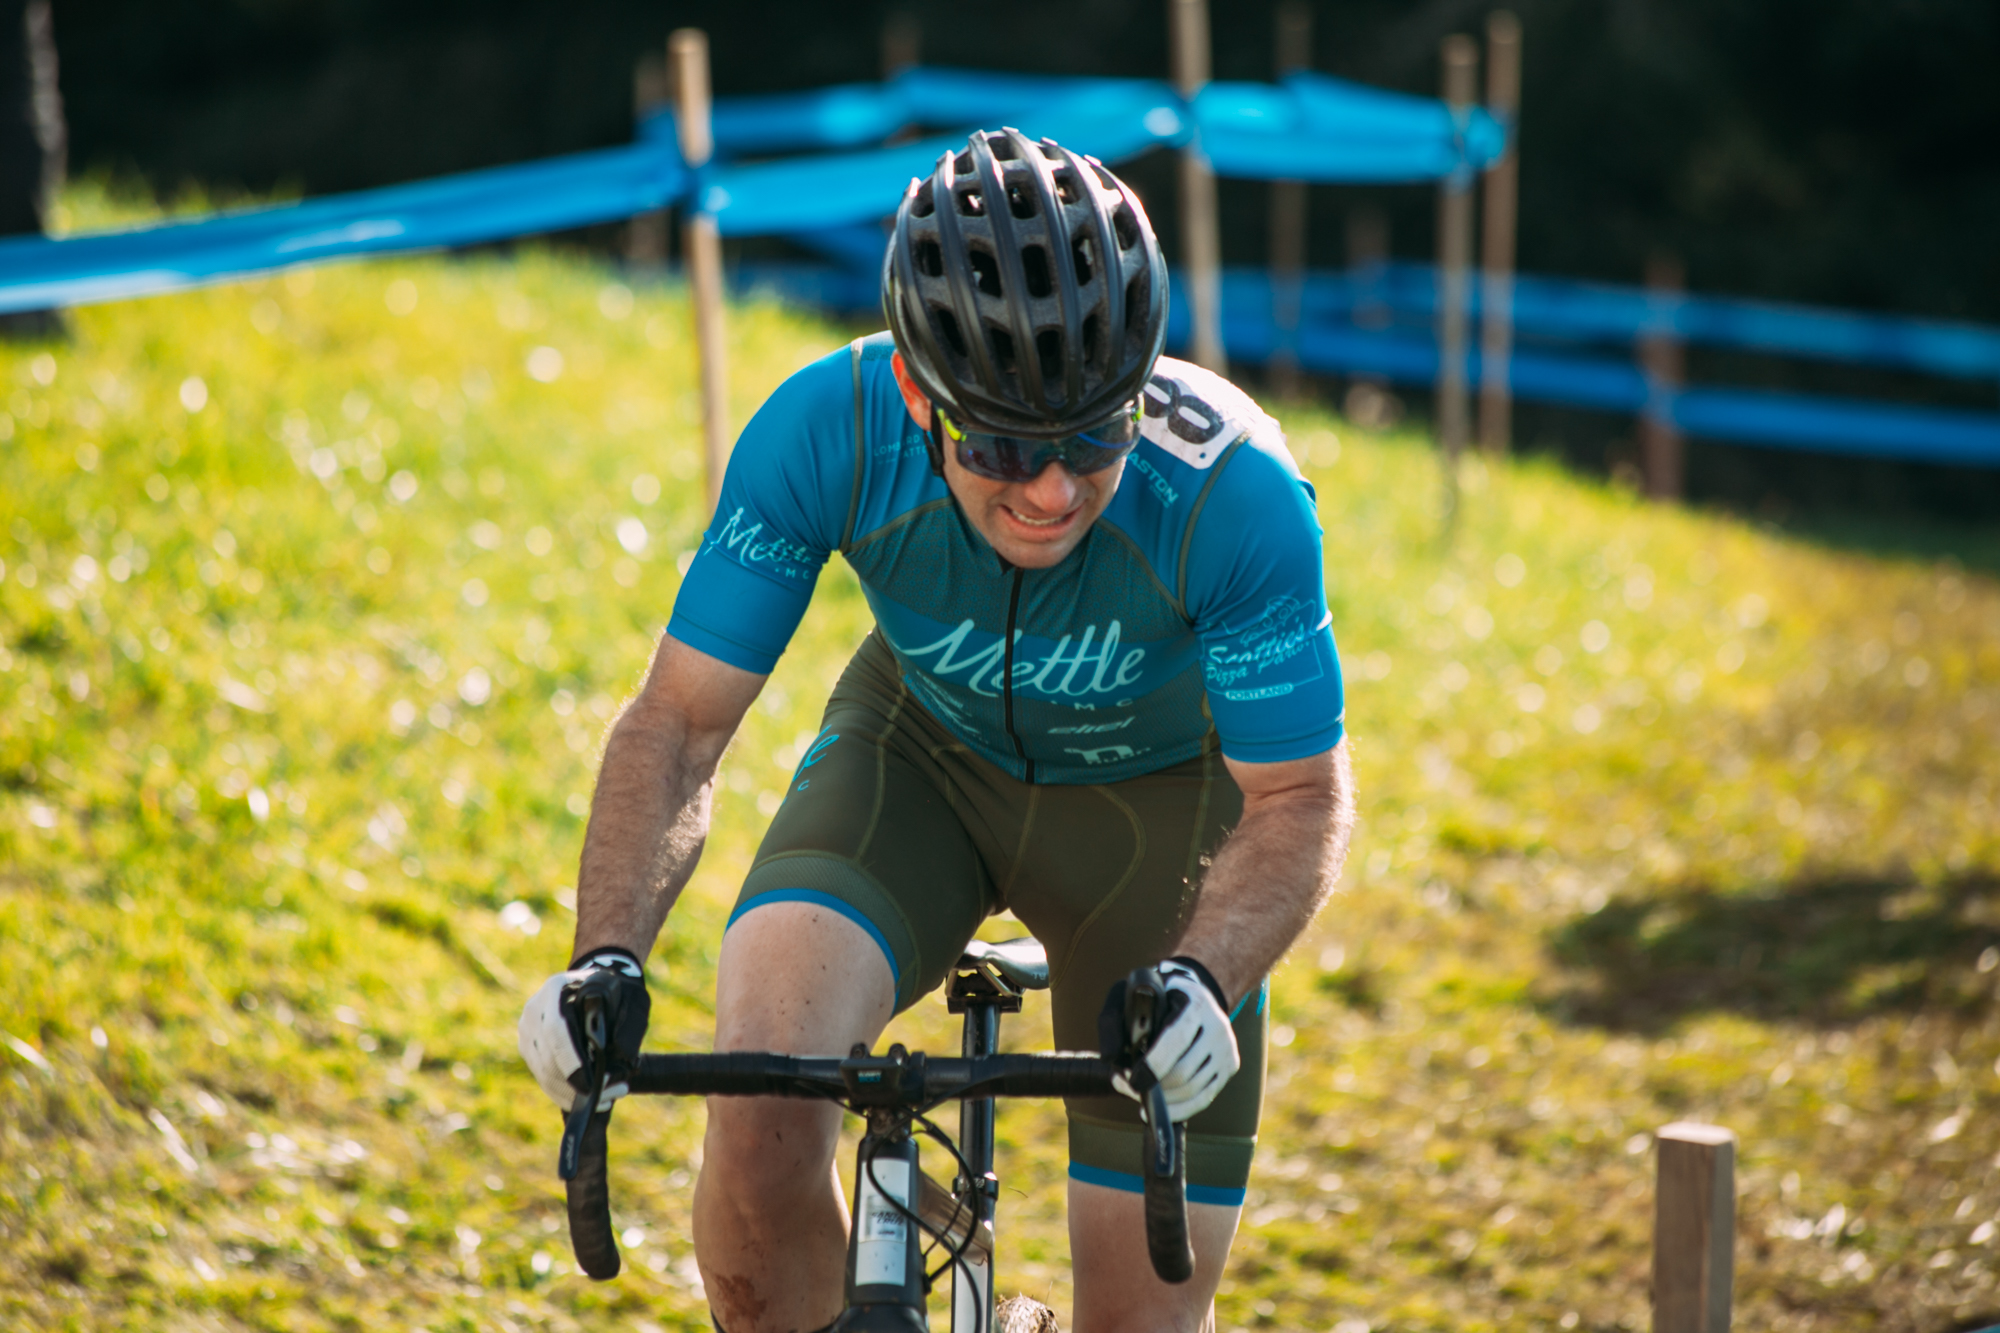 Cyclocross18_CCCX_RainierHS-81-mettlecycling.jpg